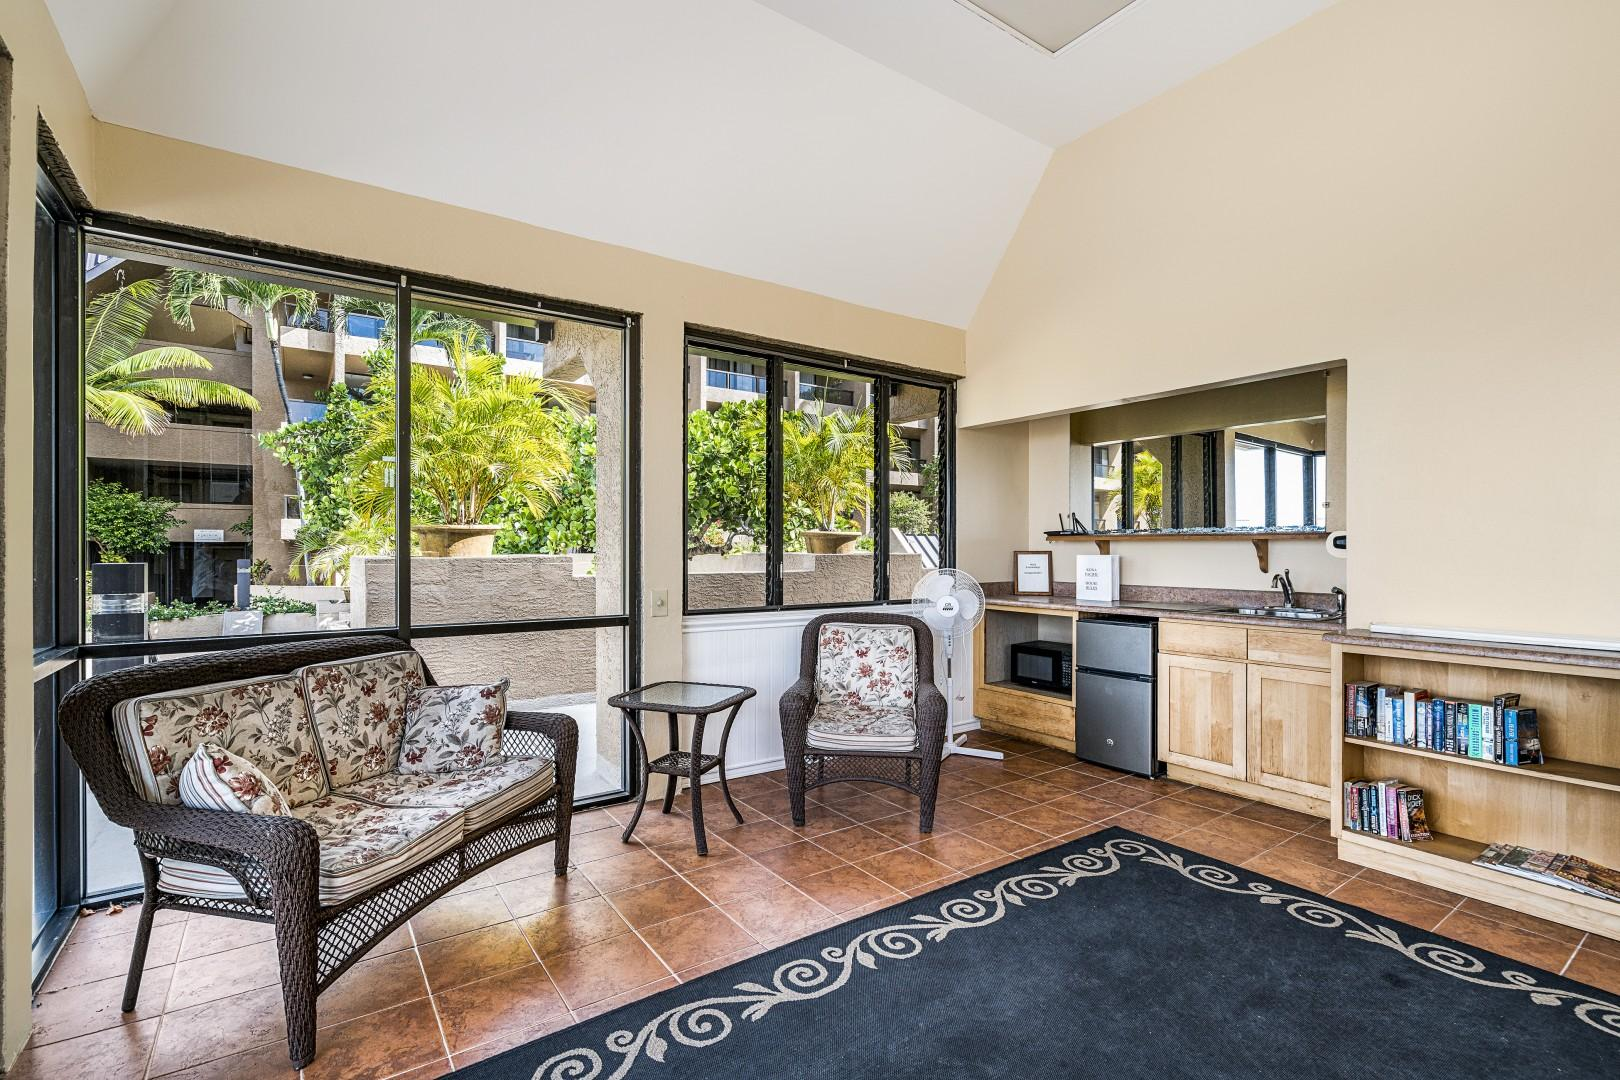 Comfort room features a kitchenette as well!